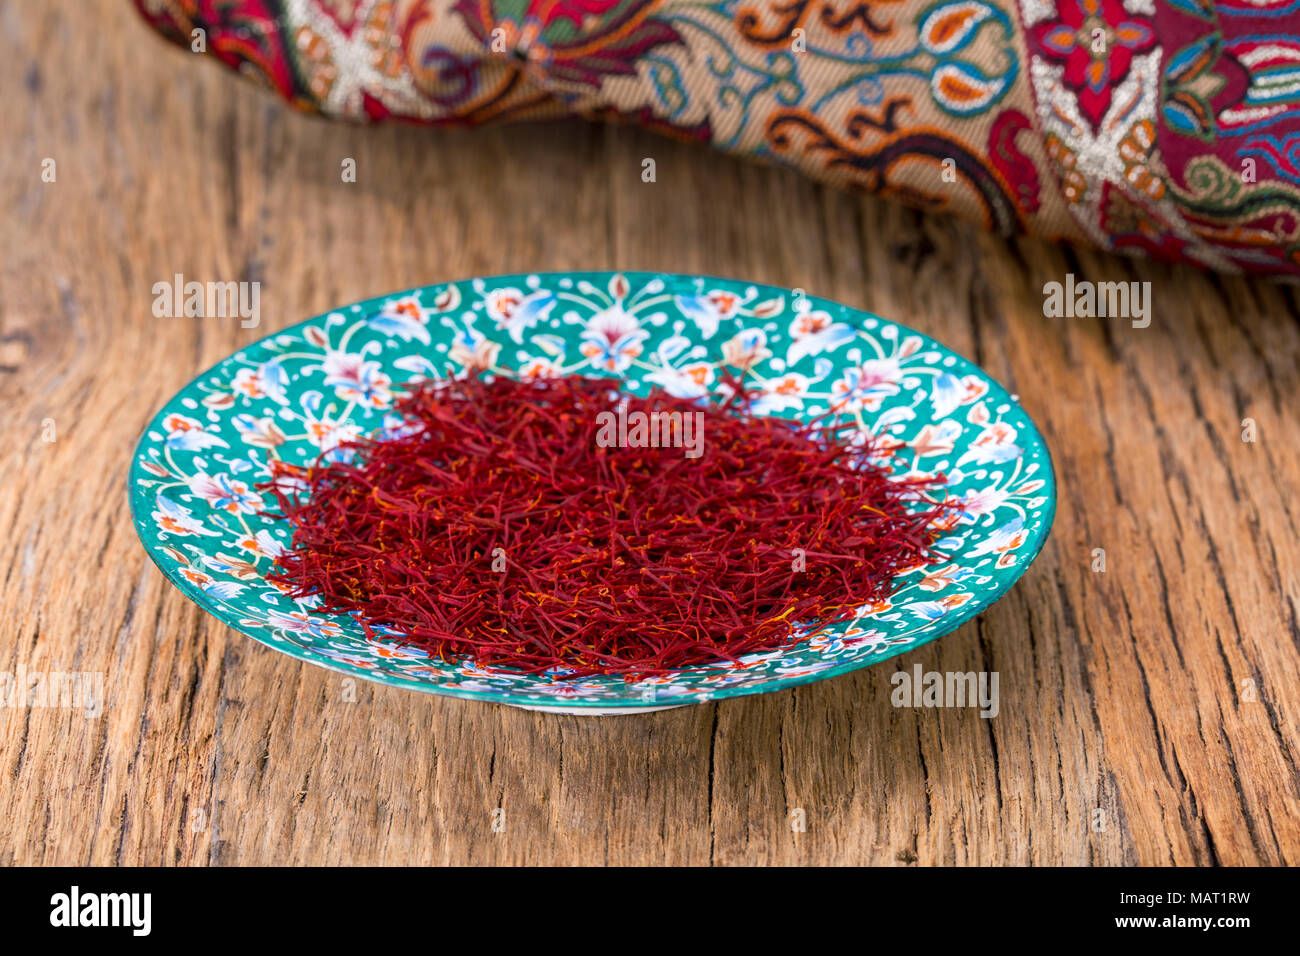 Red Threads And Yellow Style High Grade And Strength Of Dry Saffron Spice On Persian Turquoise Handmade Design Plate On Wooden Table - Stock Image